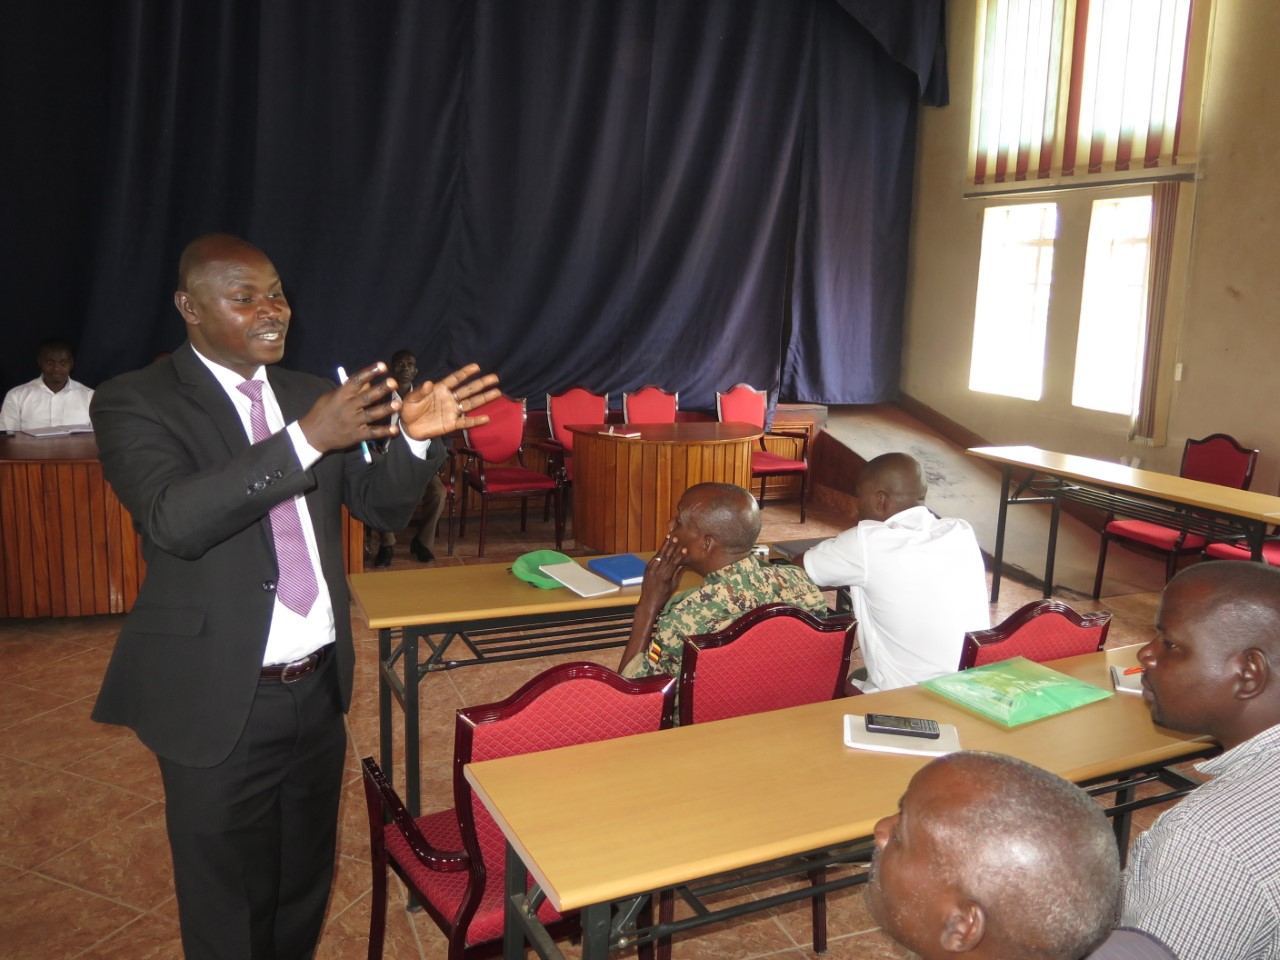 Ntungamo Deputy CAO Leonard Ahimbisibwe speaks to some of the officials. (PHOTO/Micha Kamusiime)